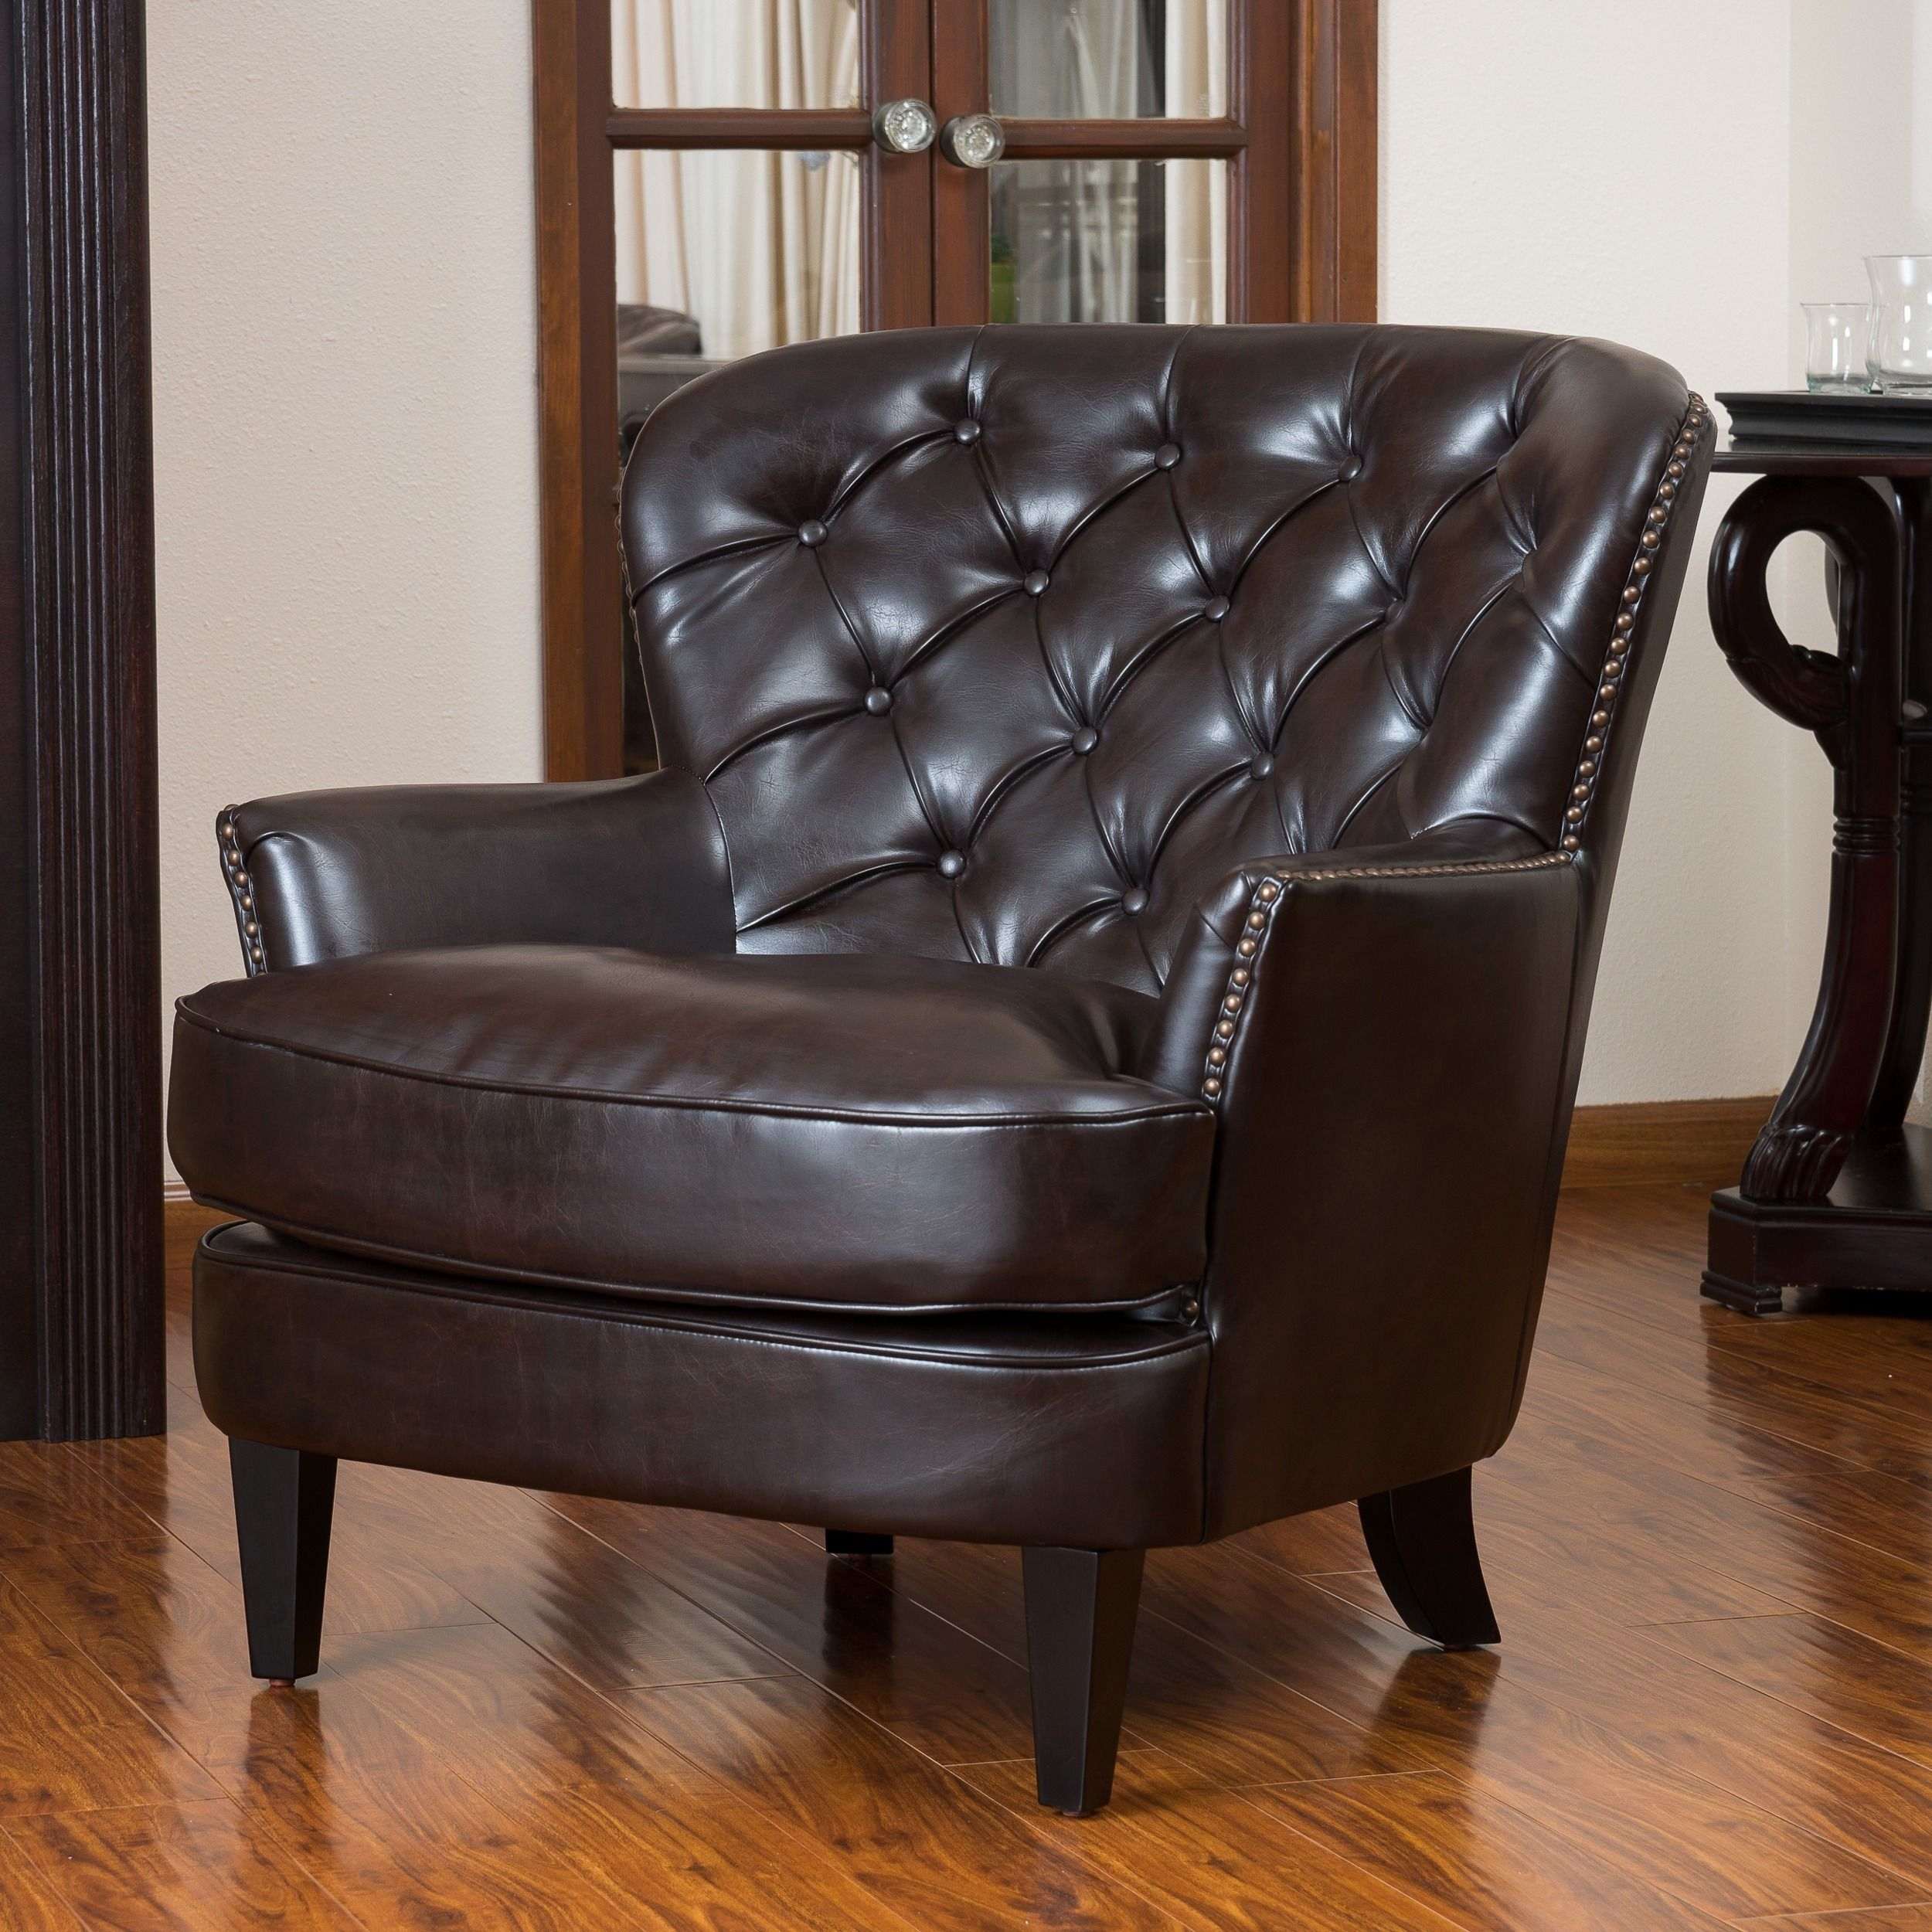 Tafton Tufted Oversized Brown Leather Club Chair By